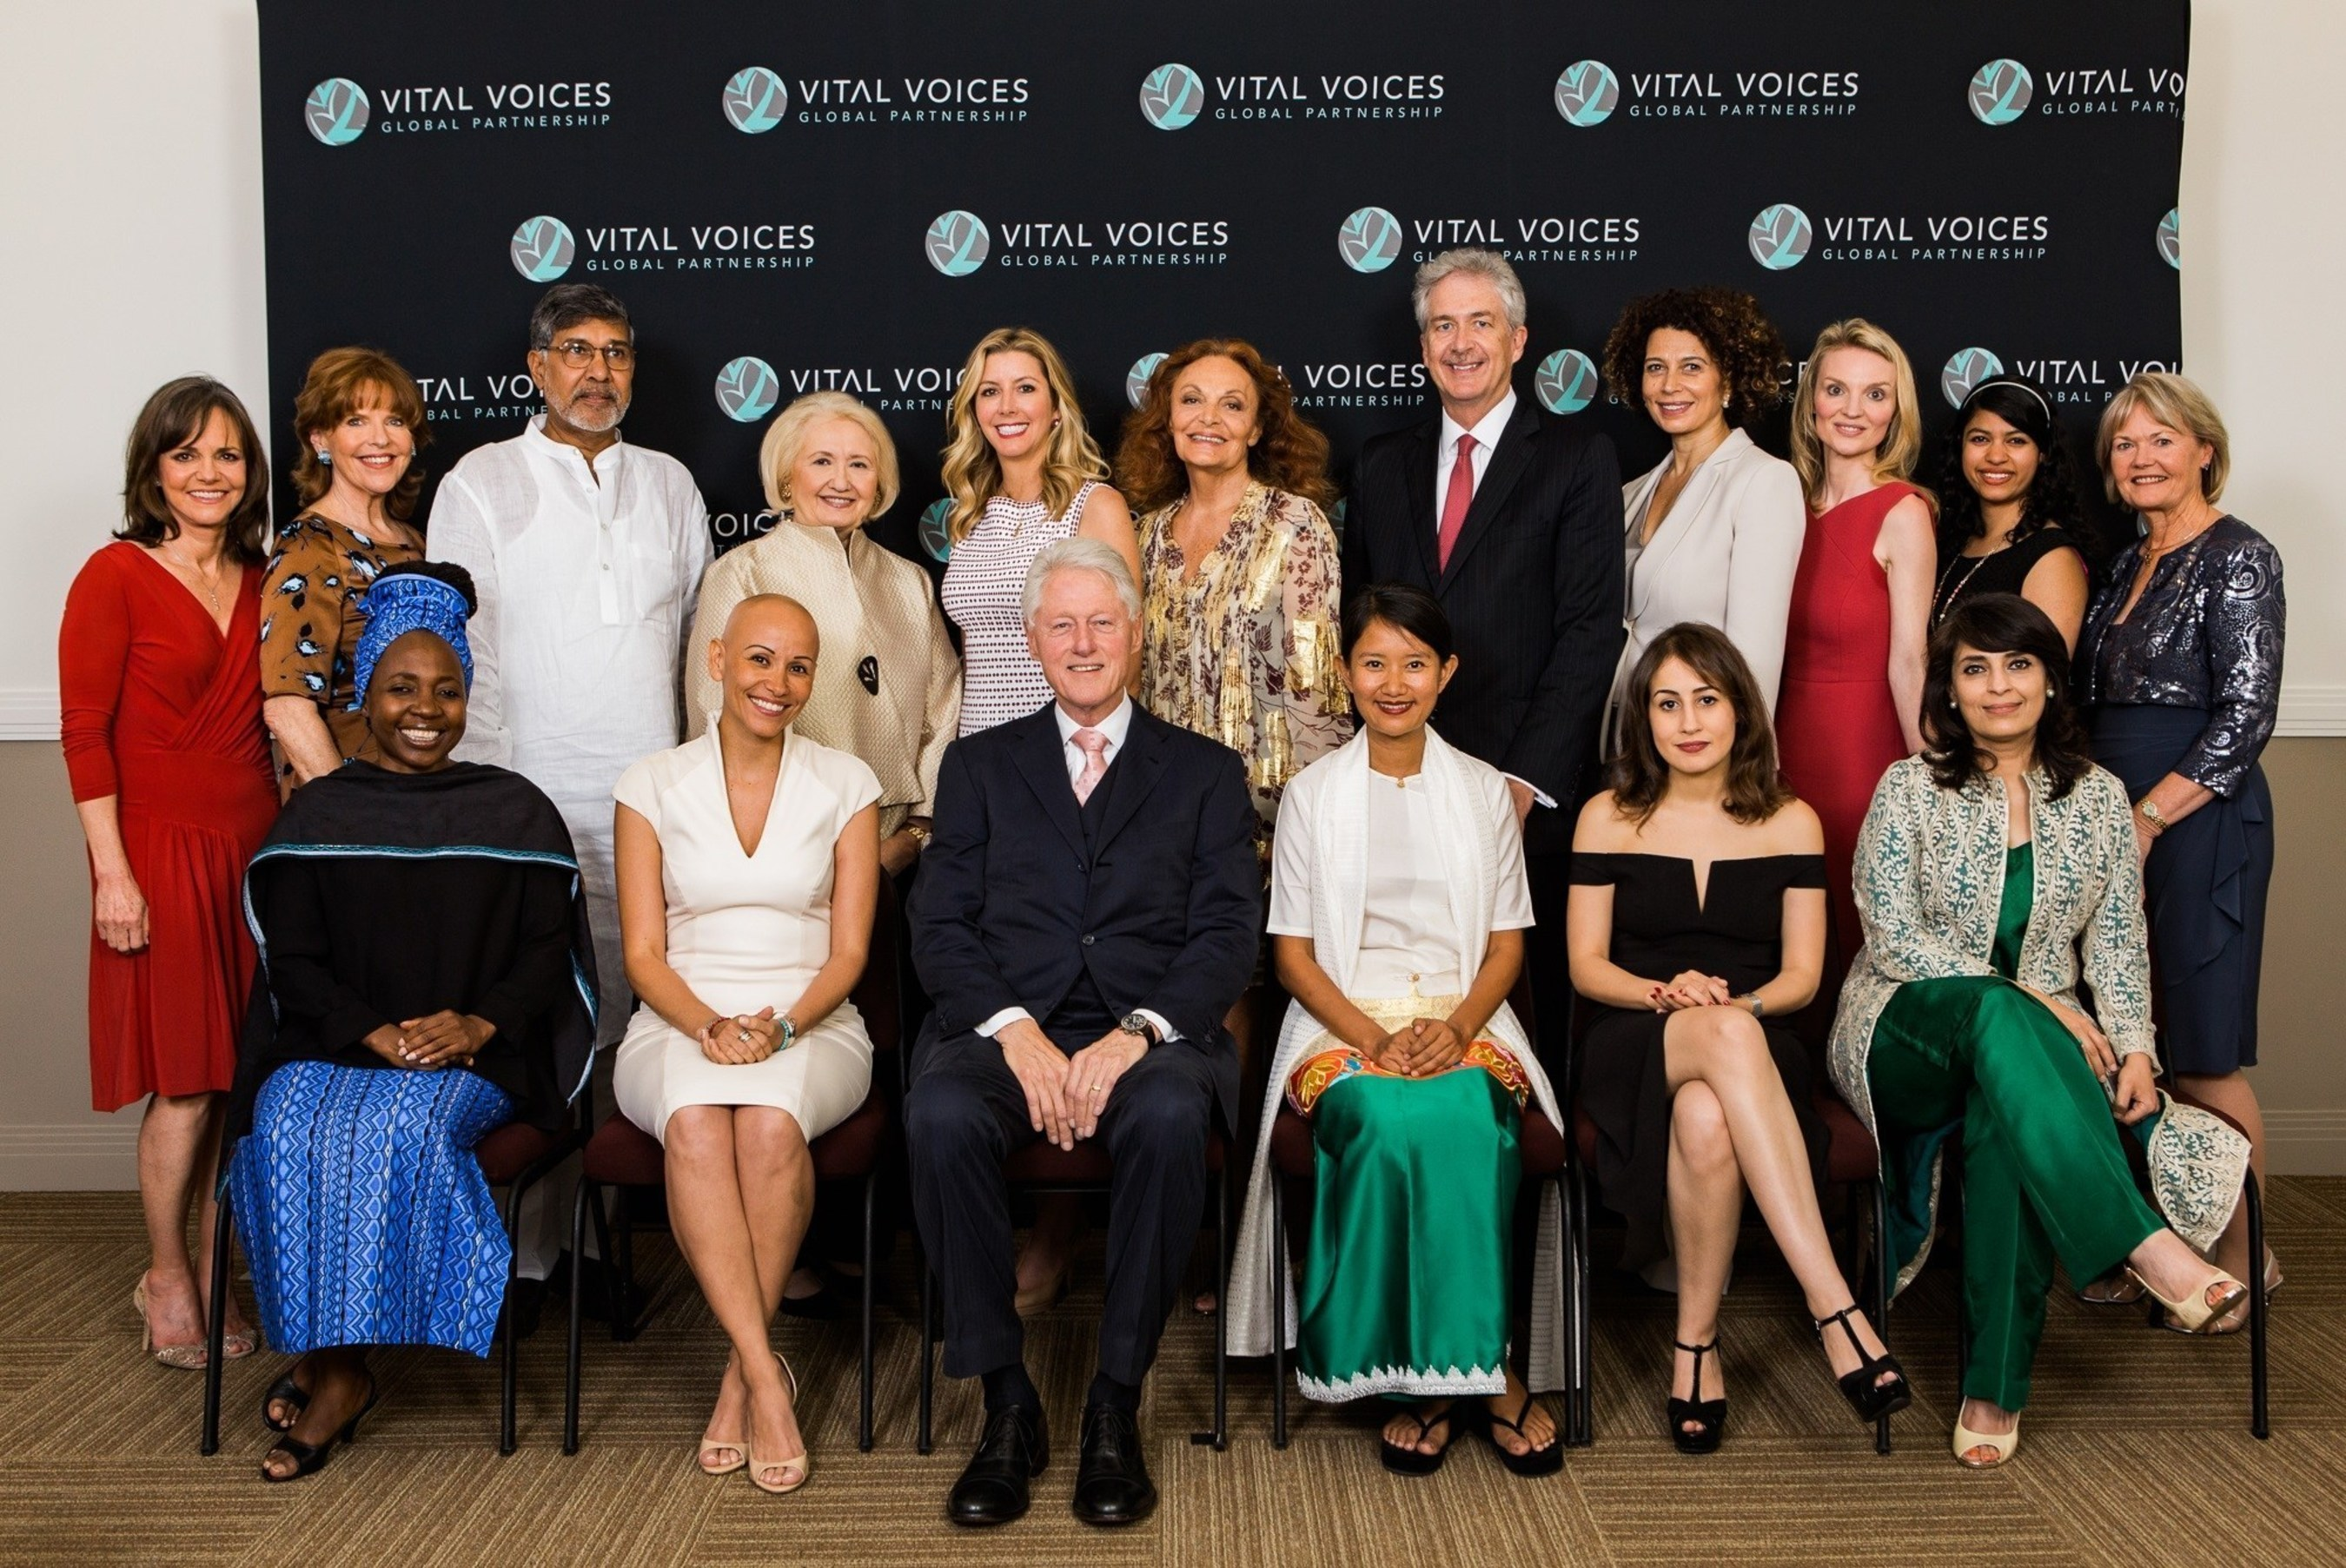 President Bill Clinton, Vital Voices Global Partnership Celebrate Groundbreaking Women from around the World